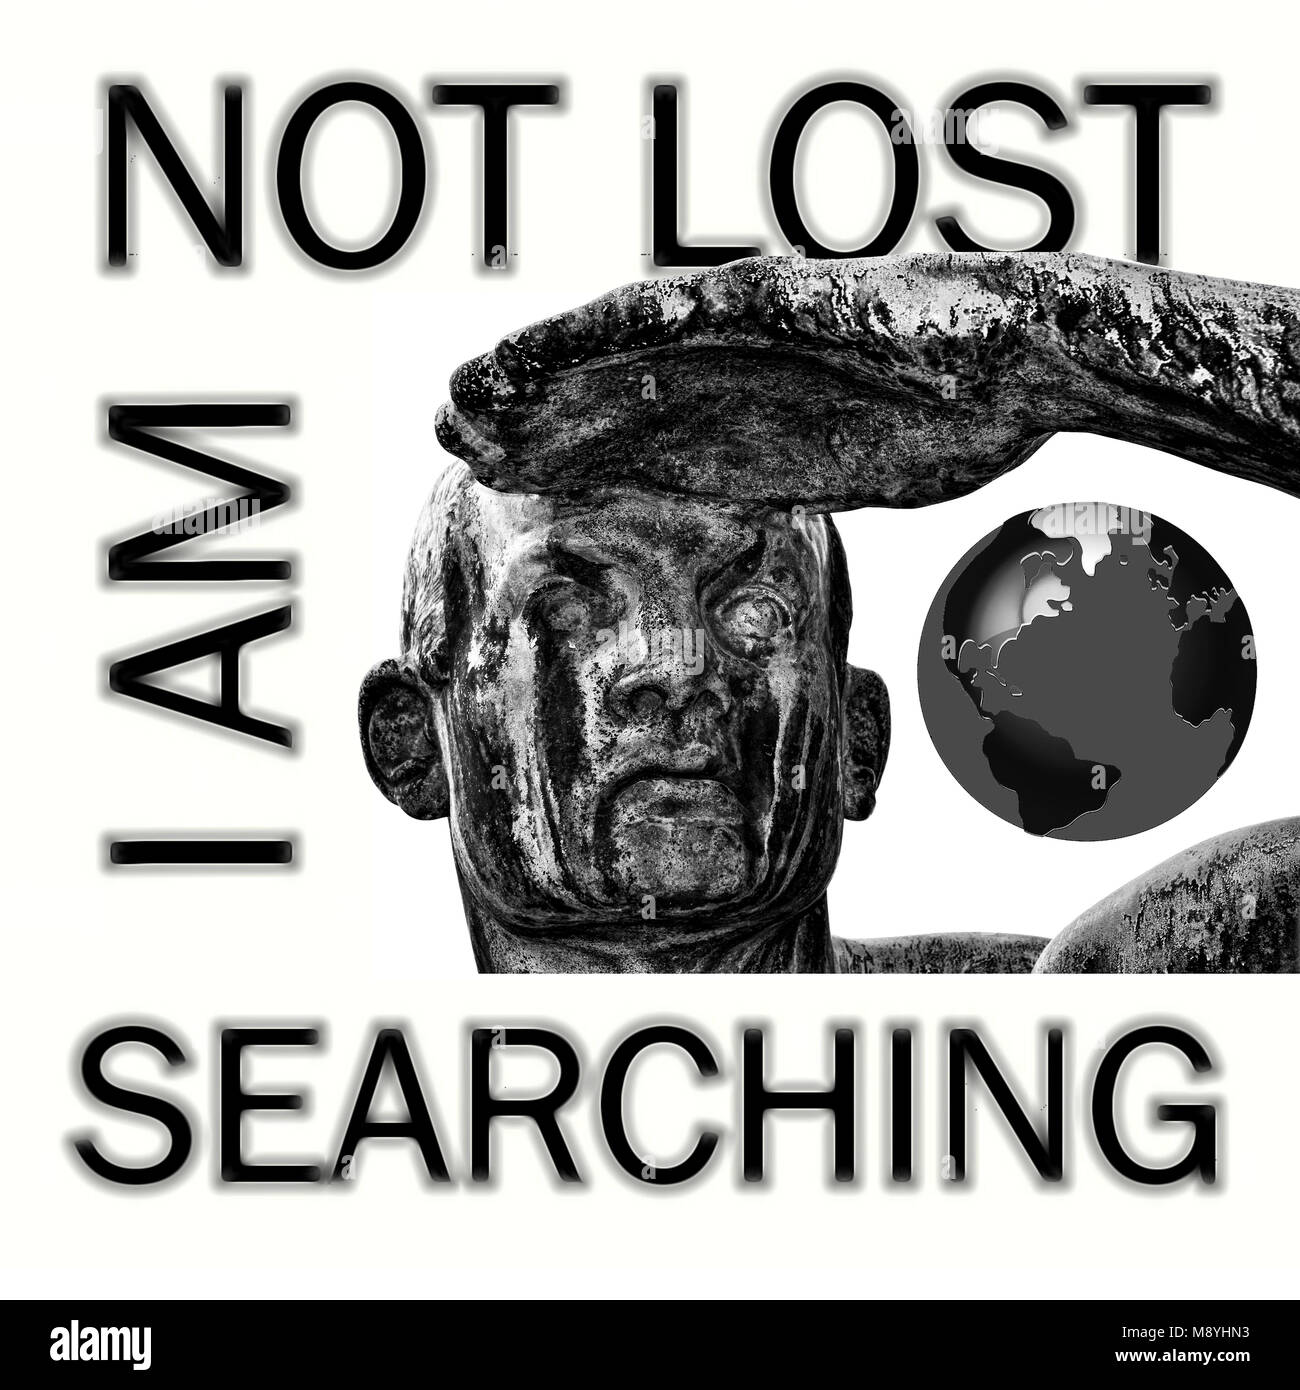 I am NOT lost, I am SEARCHING - Stock Image